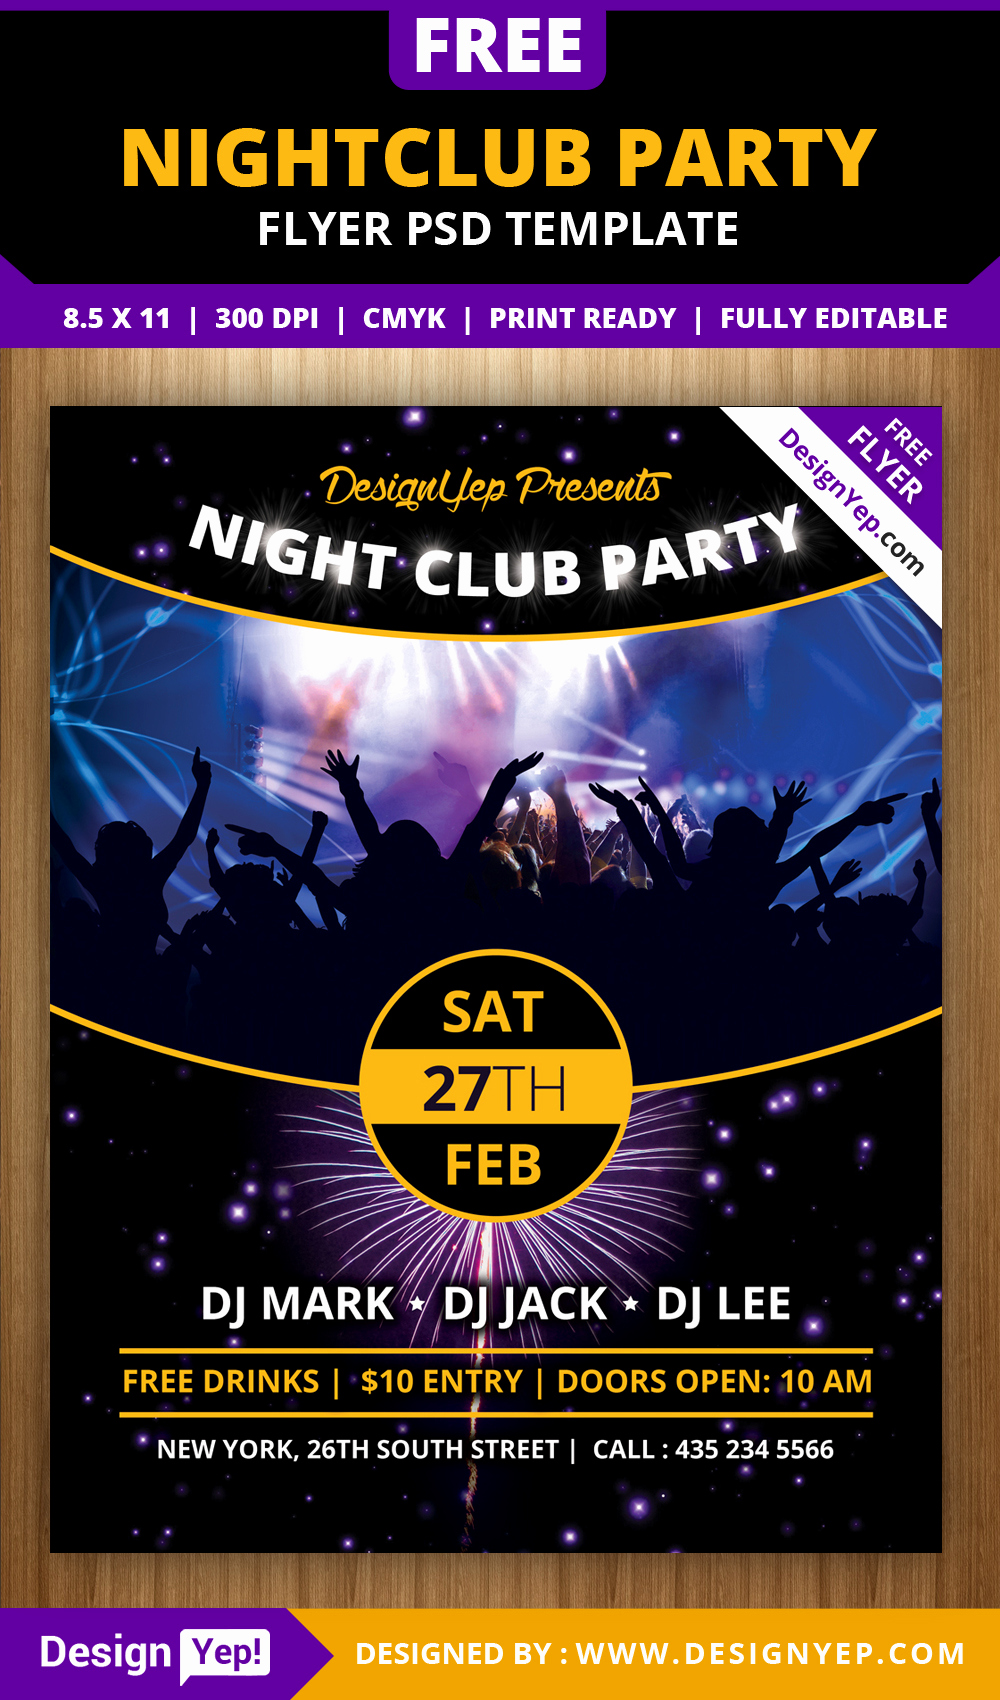 Free Download Flyer Template Best Of Free Nightclub Party Flyer Psd Template Designyep